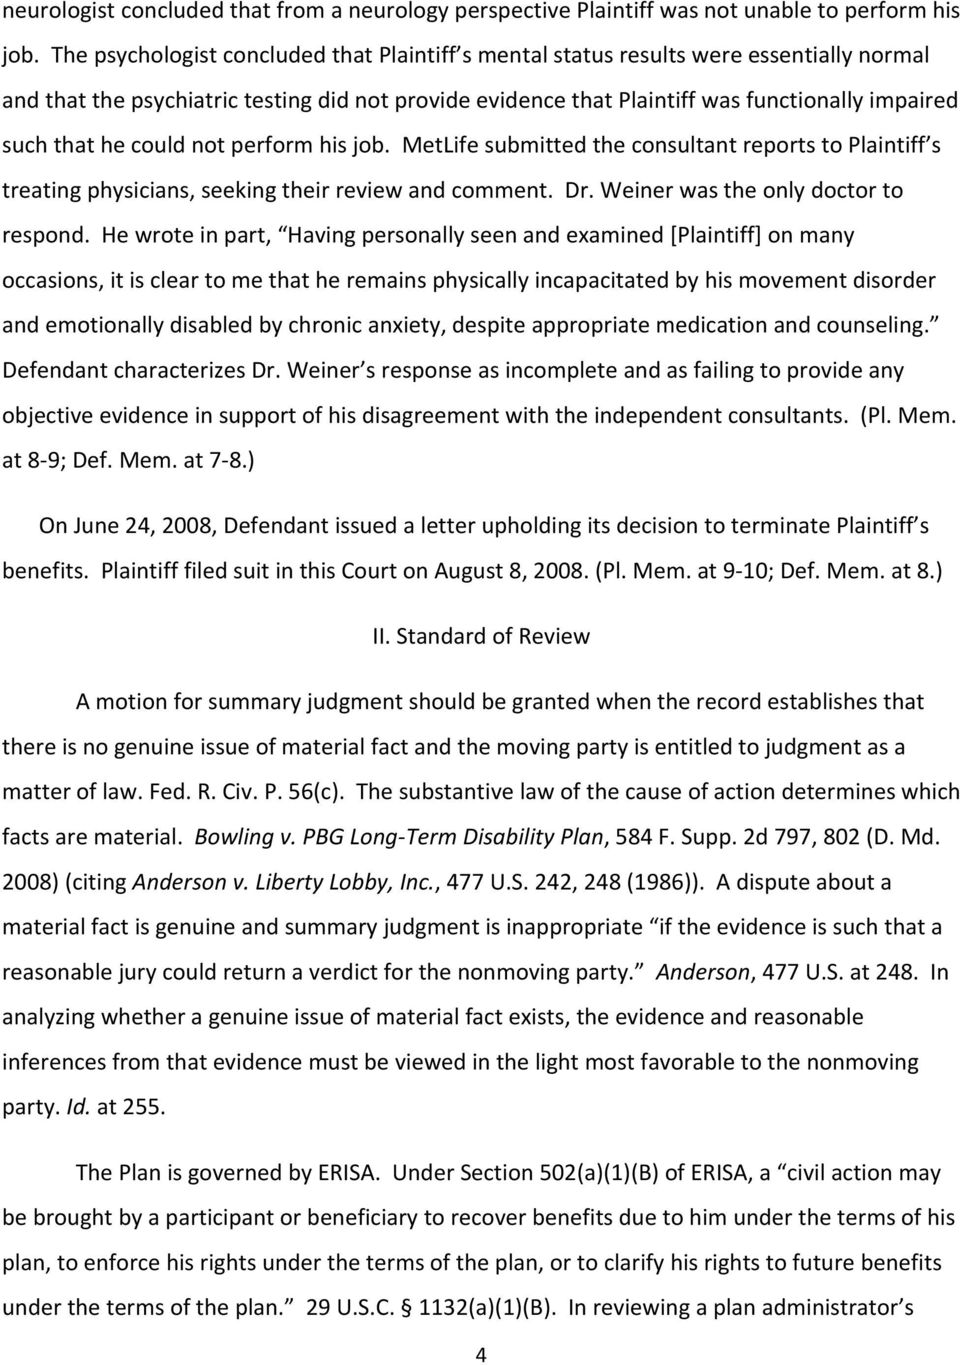 he could not perform his job. MetLife submitted the consultant reports to Plaintiff s treating physicians, seeking their review and comment. Dr. Weiner was the only doctor to respond.